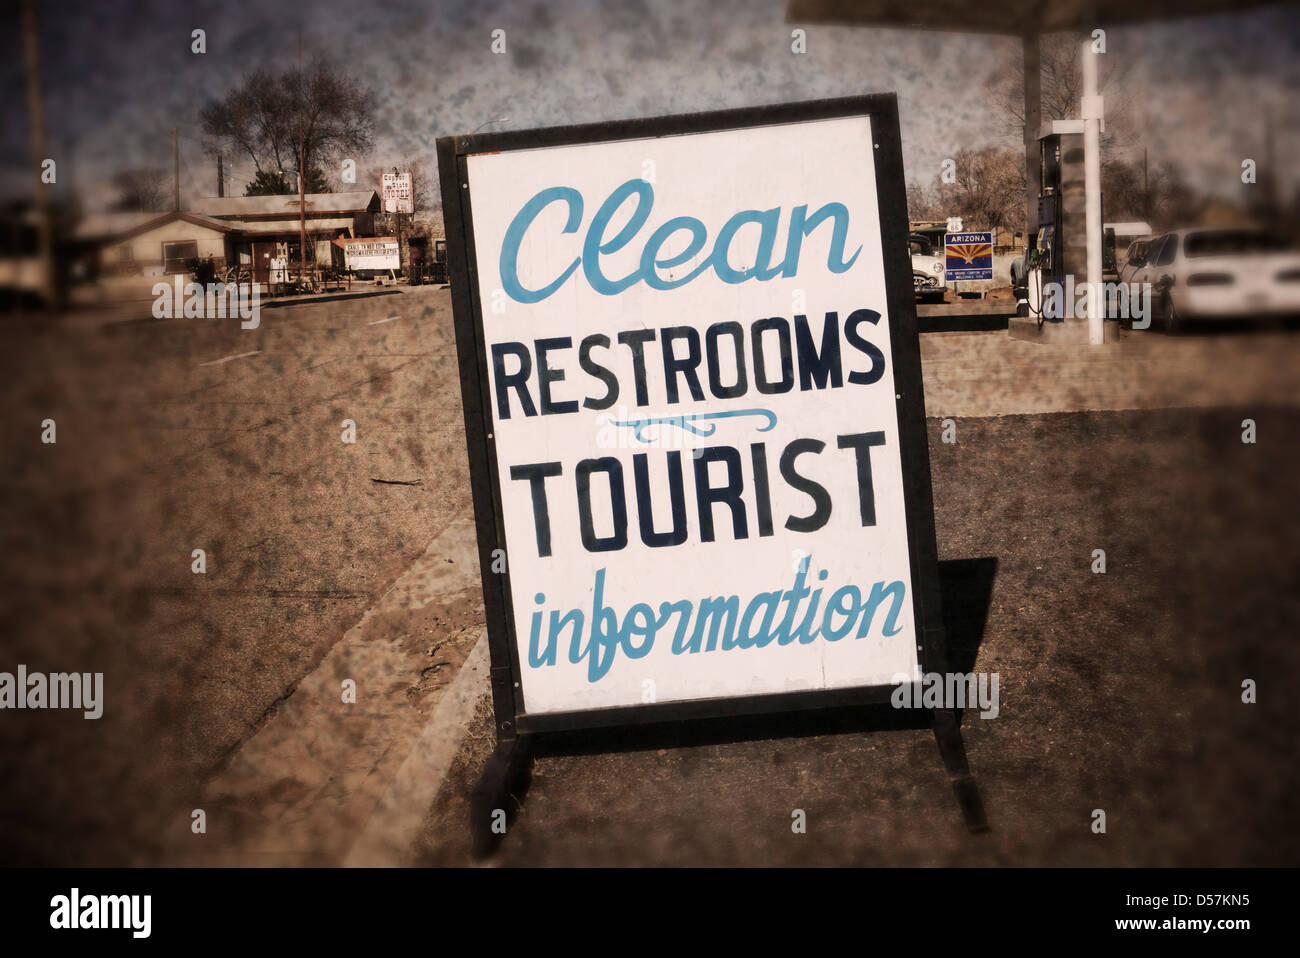 Clean restrooms & tourist info. - Stock Image